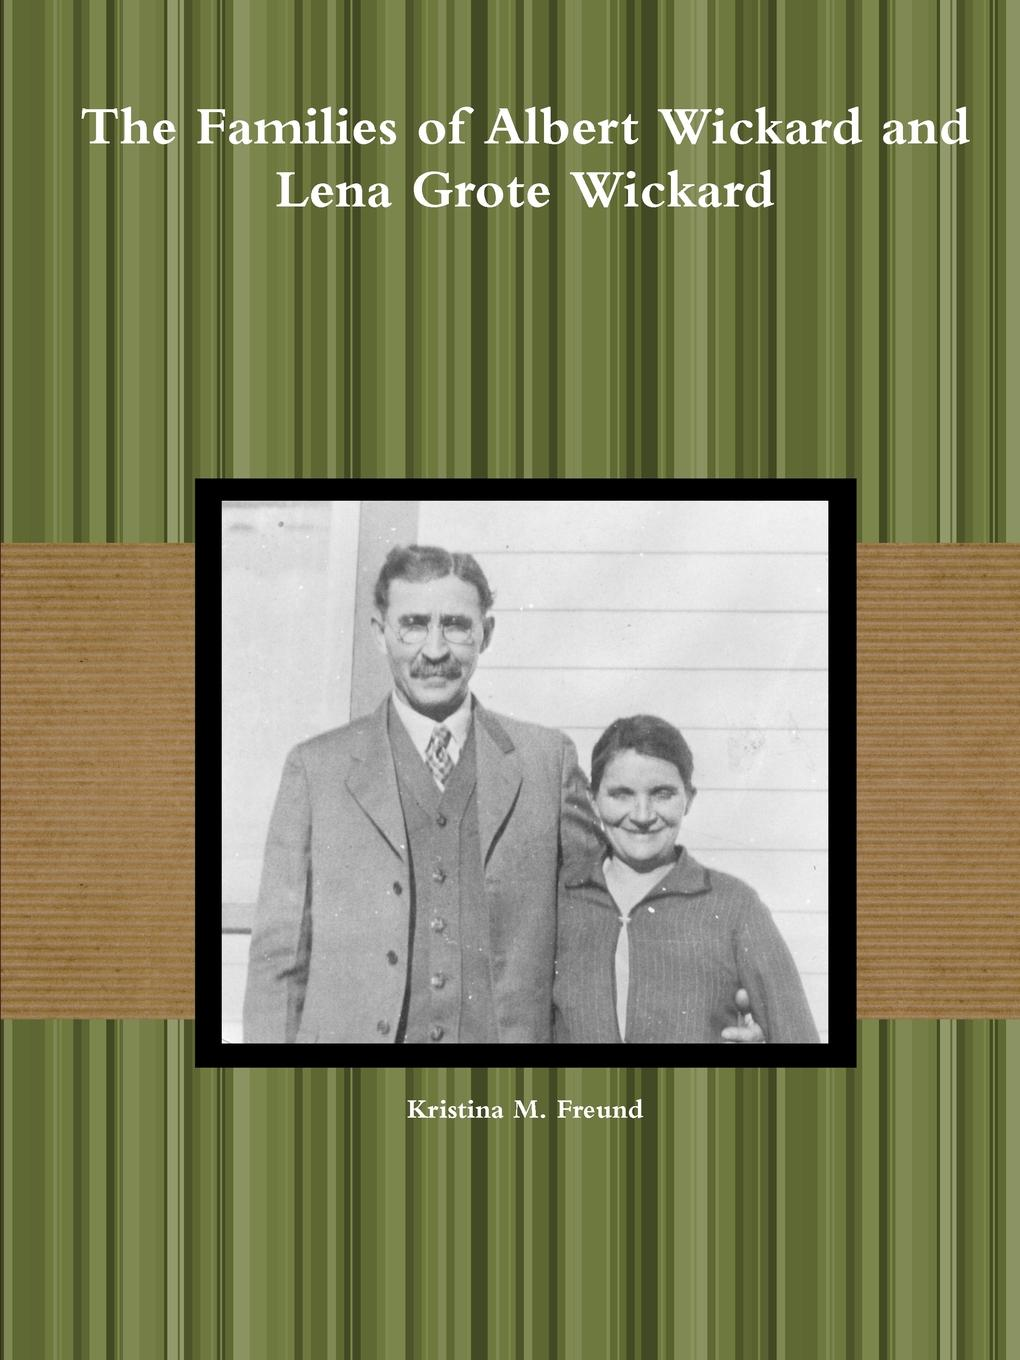 Kristina M. Freund The Families of Albert Wickard and Lena Grote Wickard